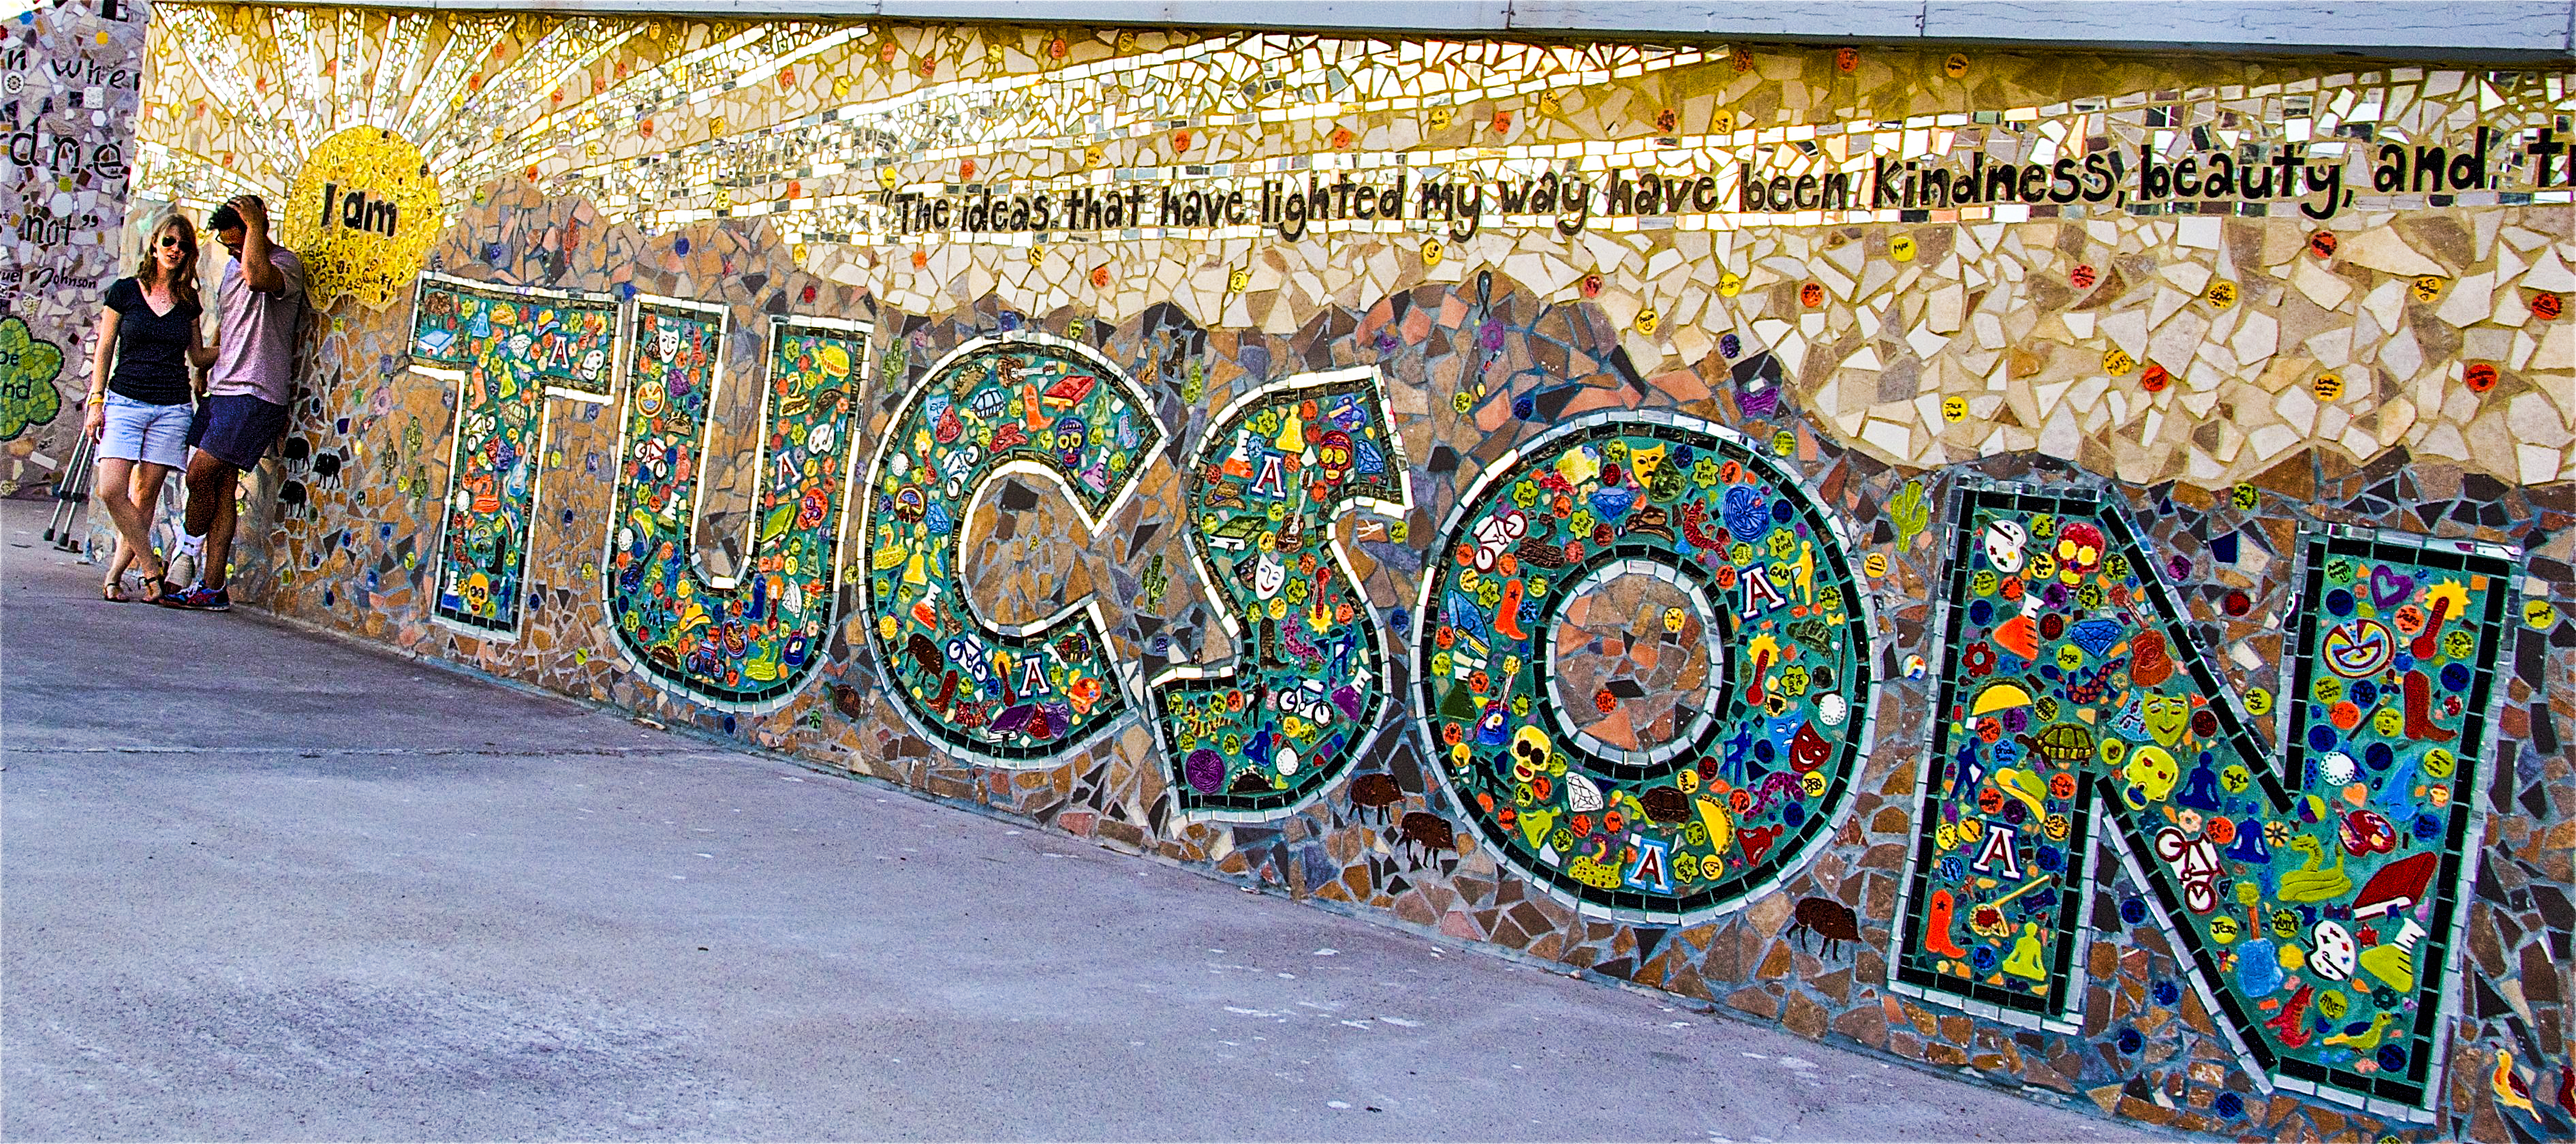 Victoria and Raul at the I am Kindness Mosaic downtown Tucson by Ben's Bells studio